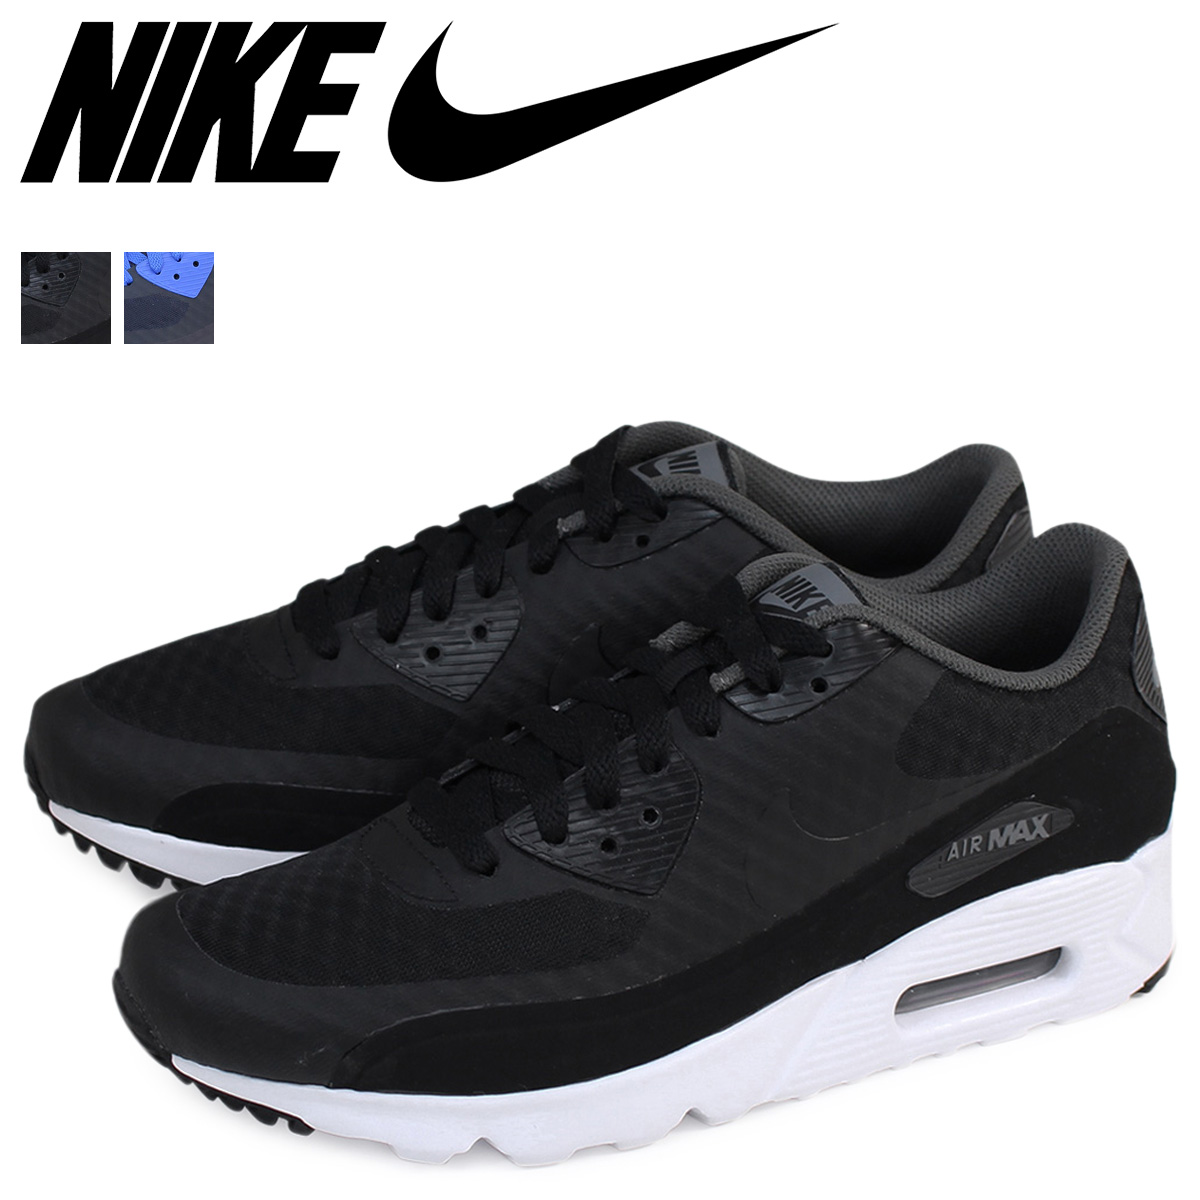 Mens Nike Air Max 90 Ultra Essential Running Shoes Dark Grey White Black 819474 013 819474 013